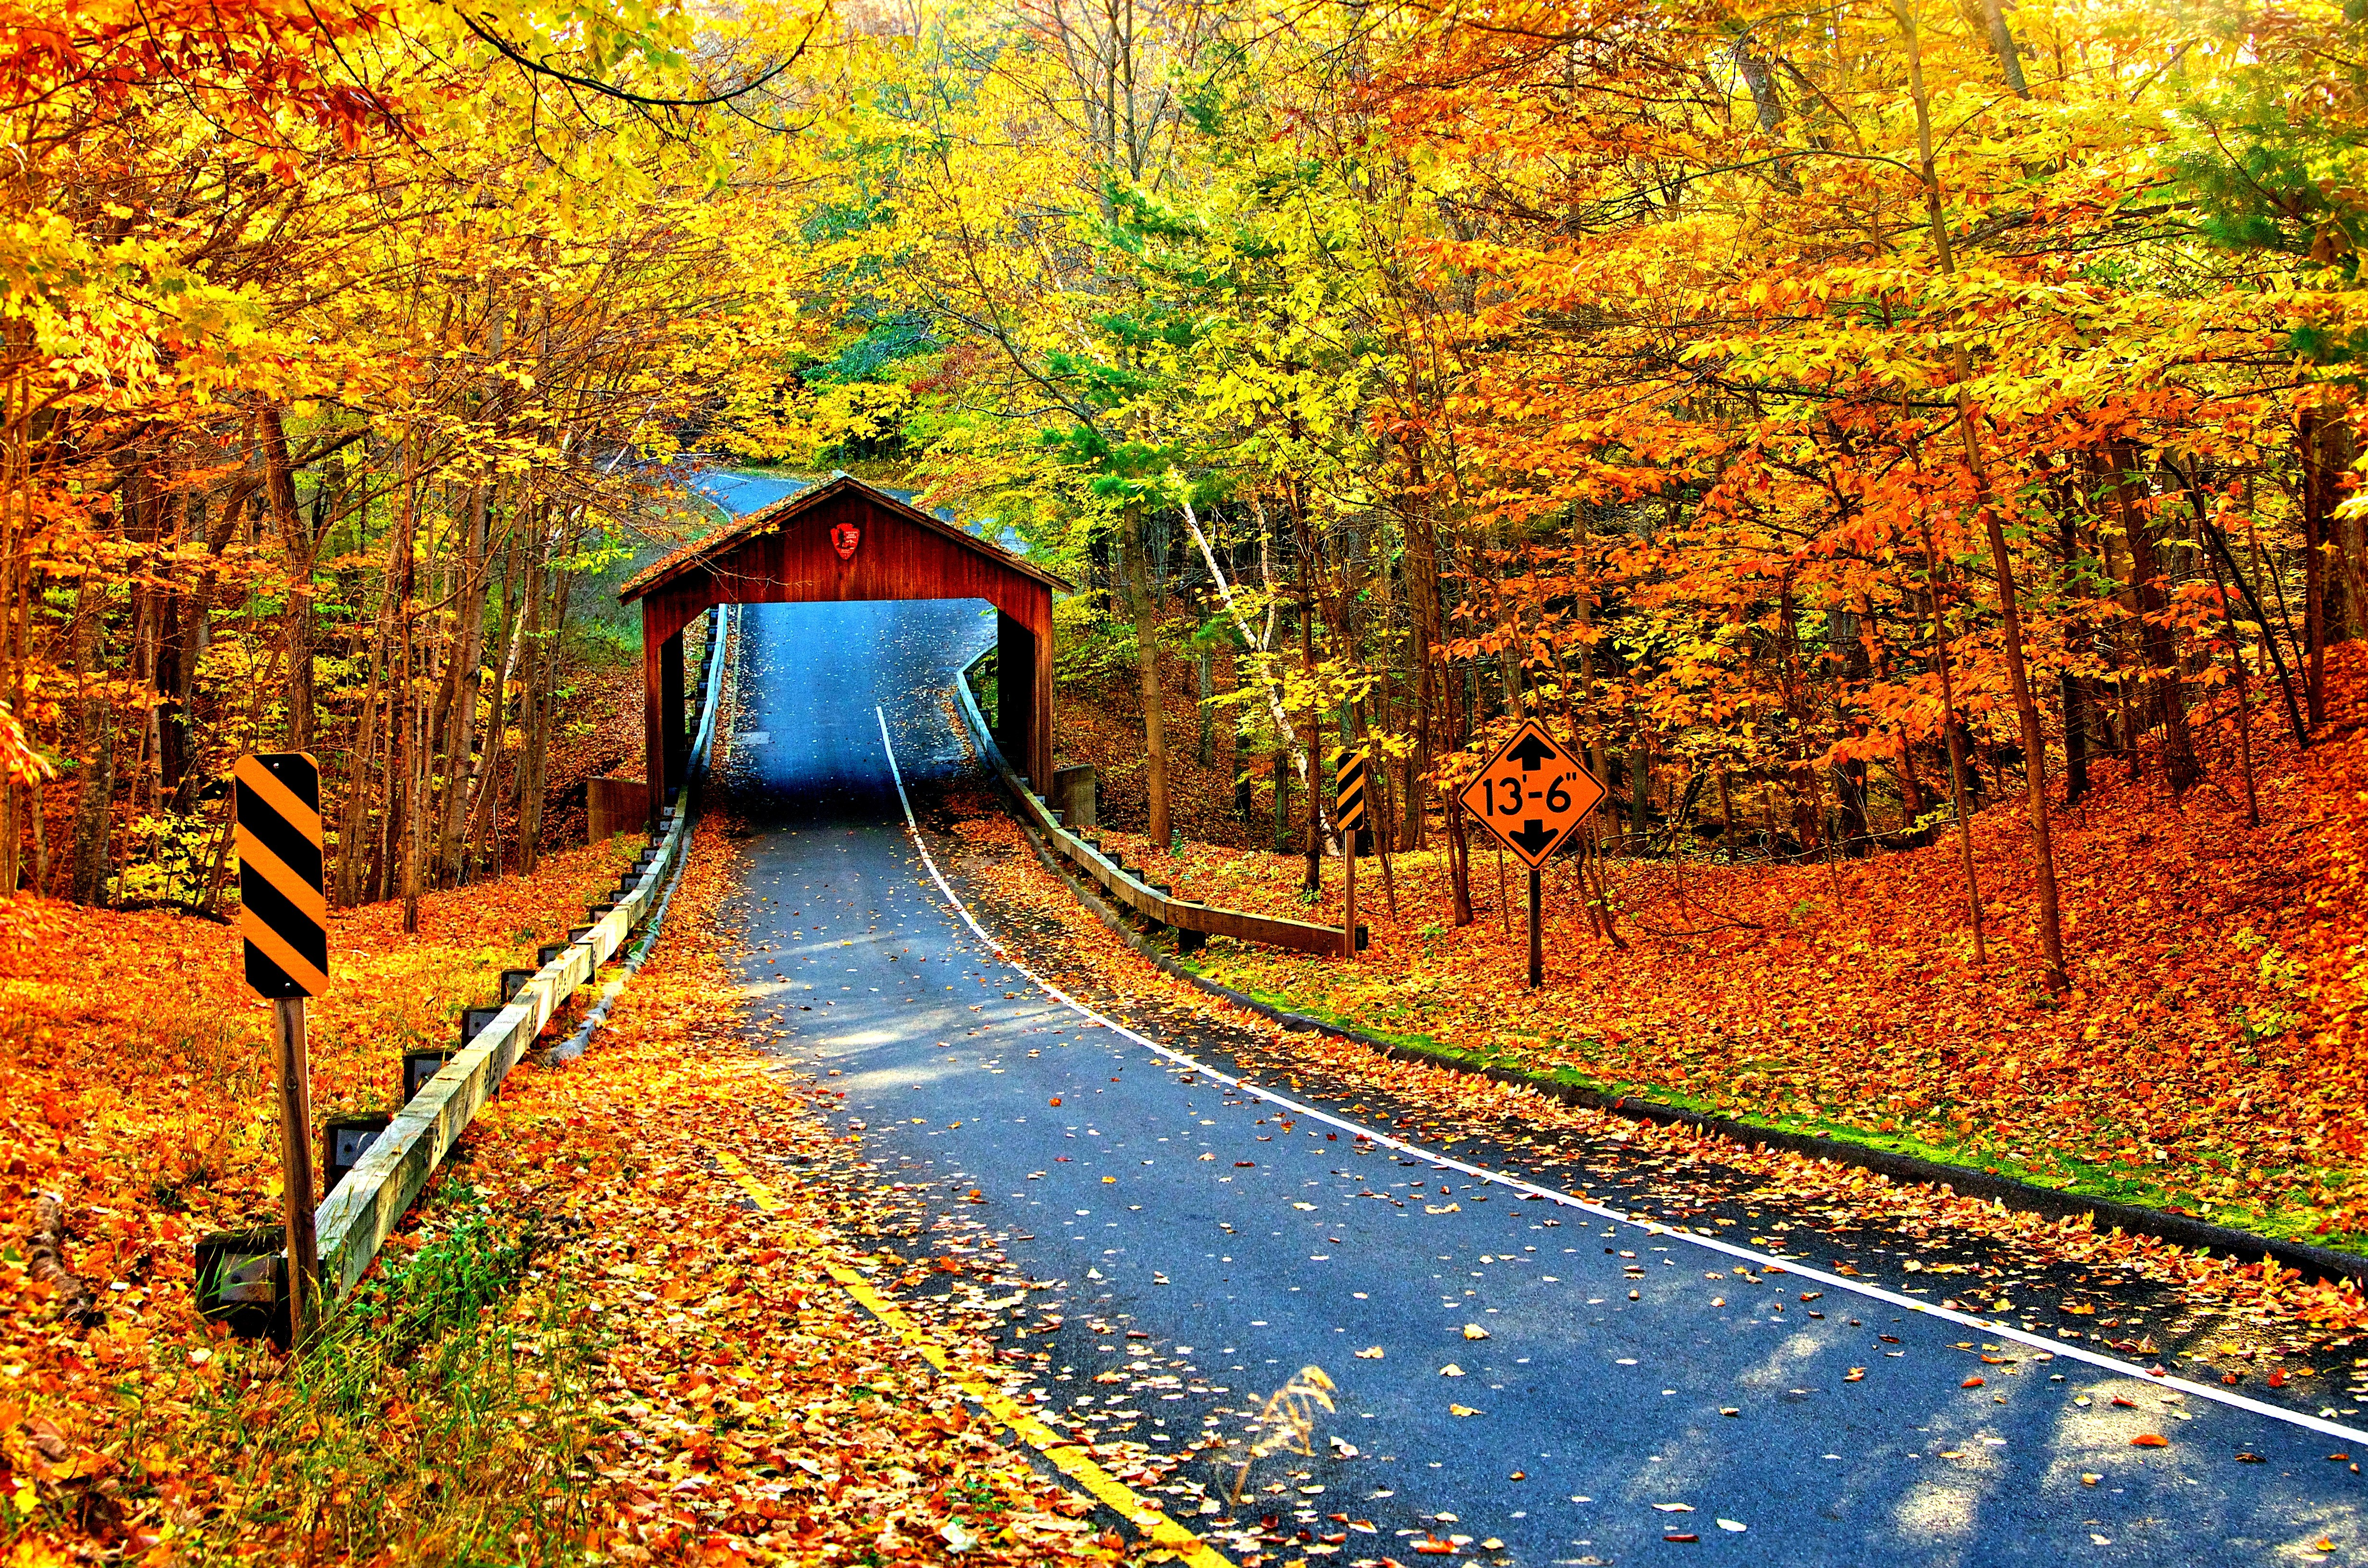 Covered Bridge On Autumn Road 4k Ultra HD Wallpaper And Background